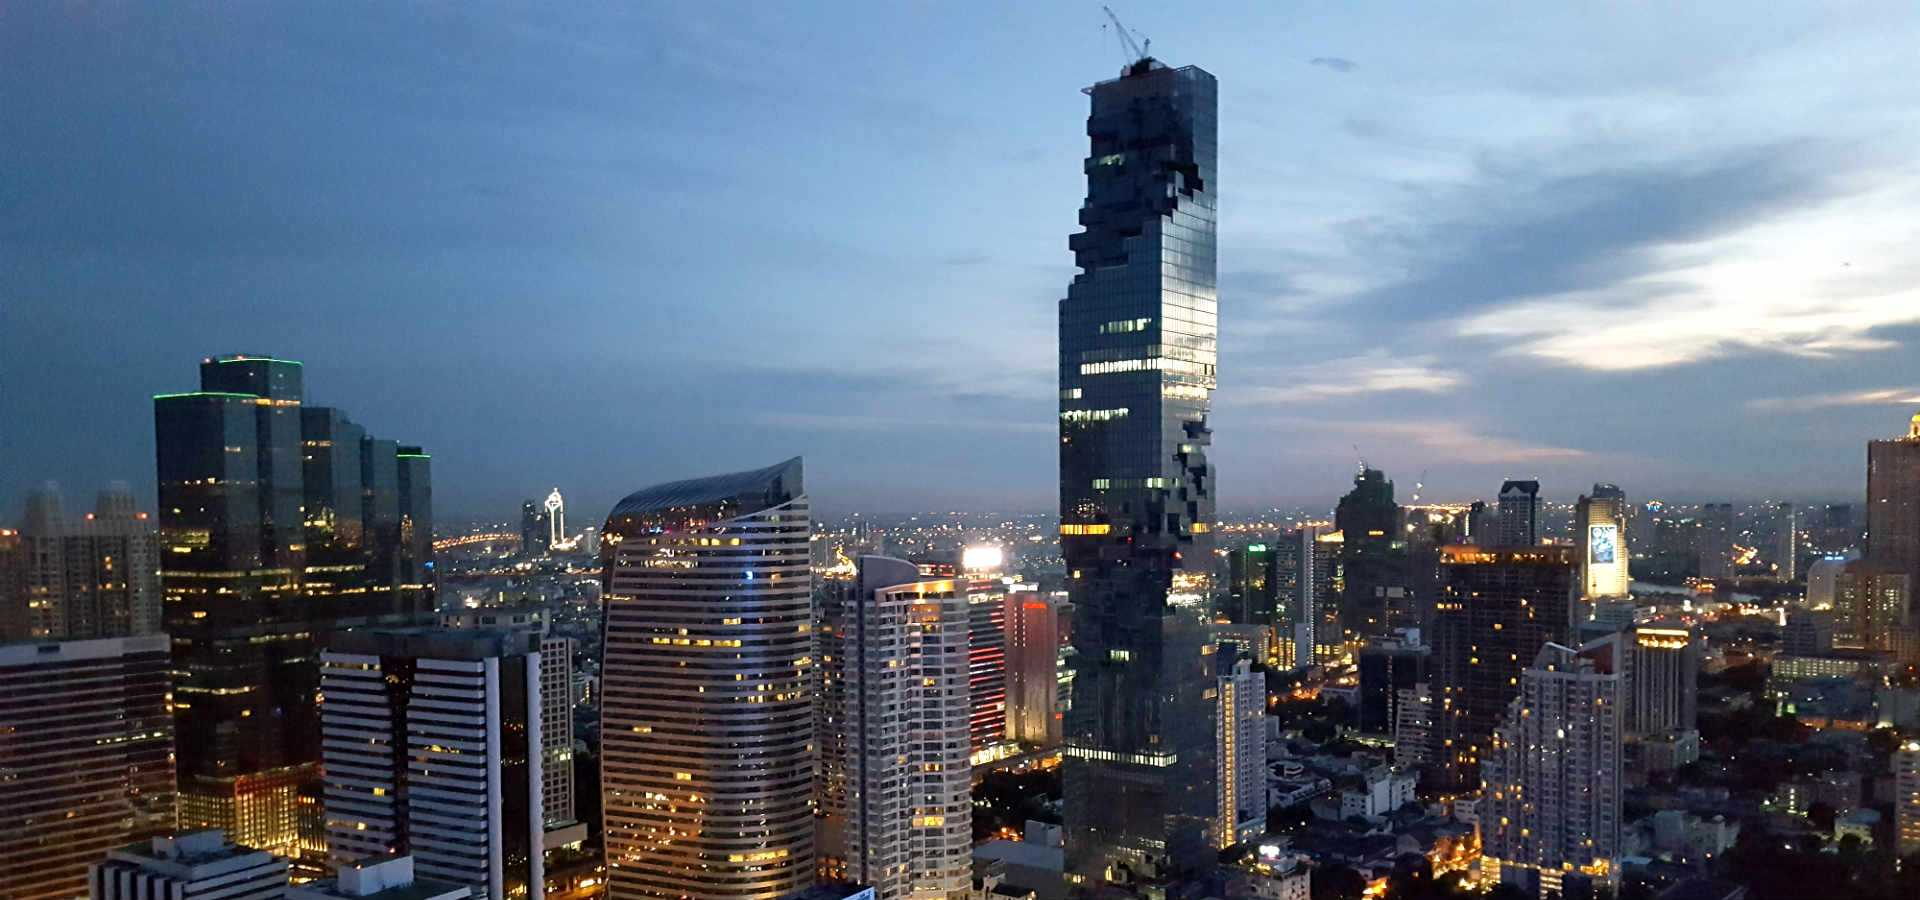 The Mahanakhon building or Pixel Tower in Bangkok